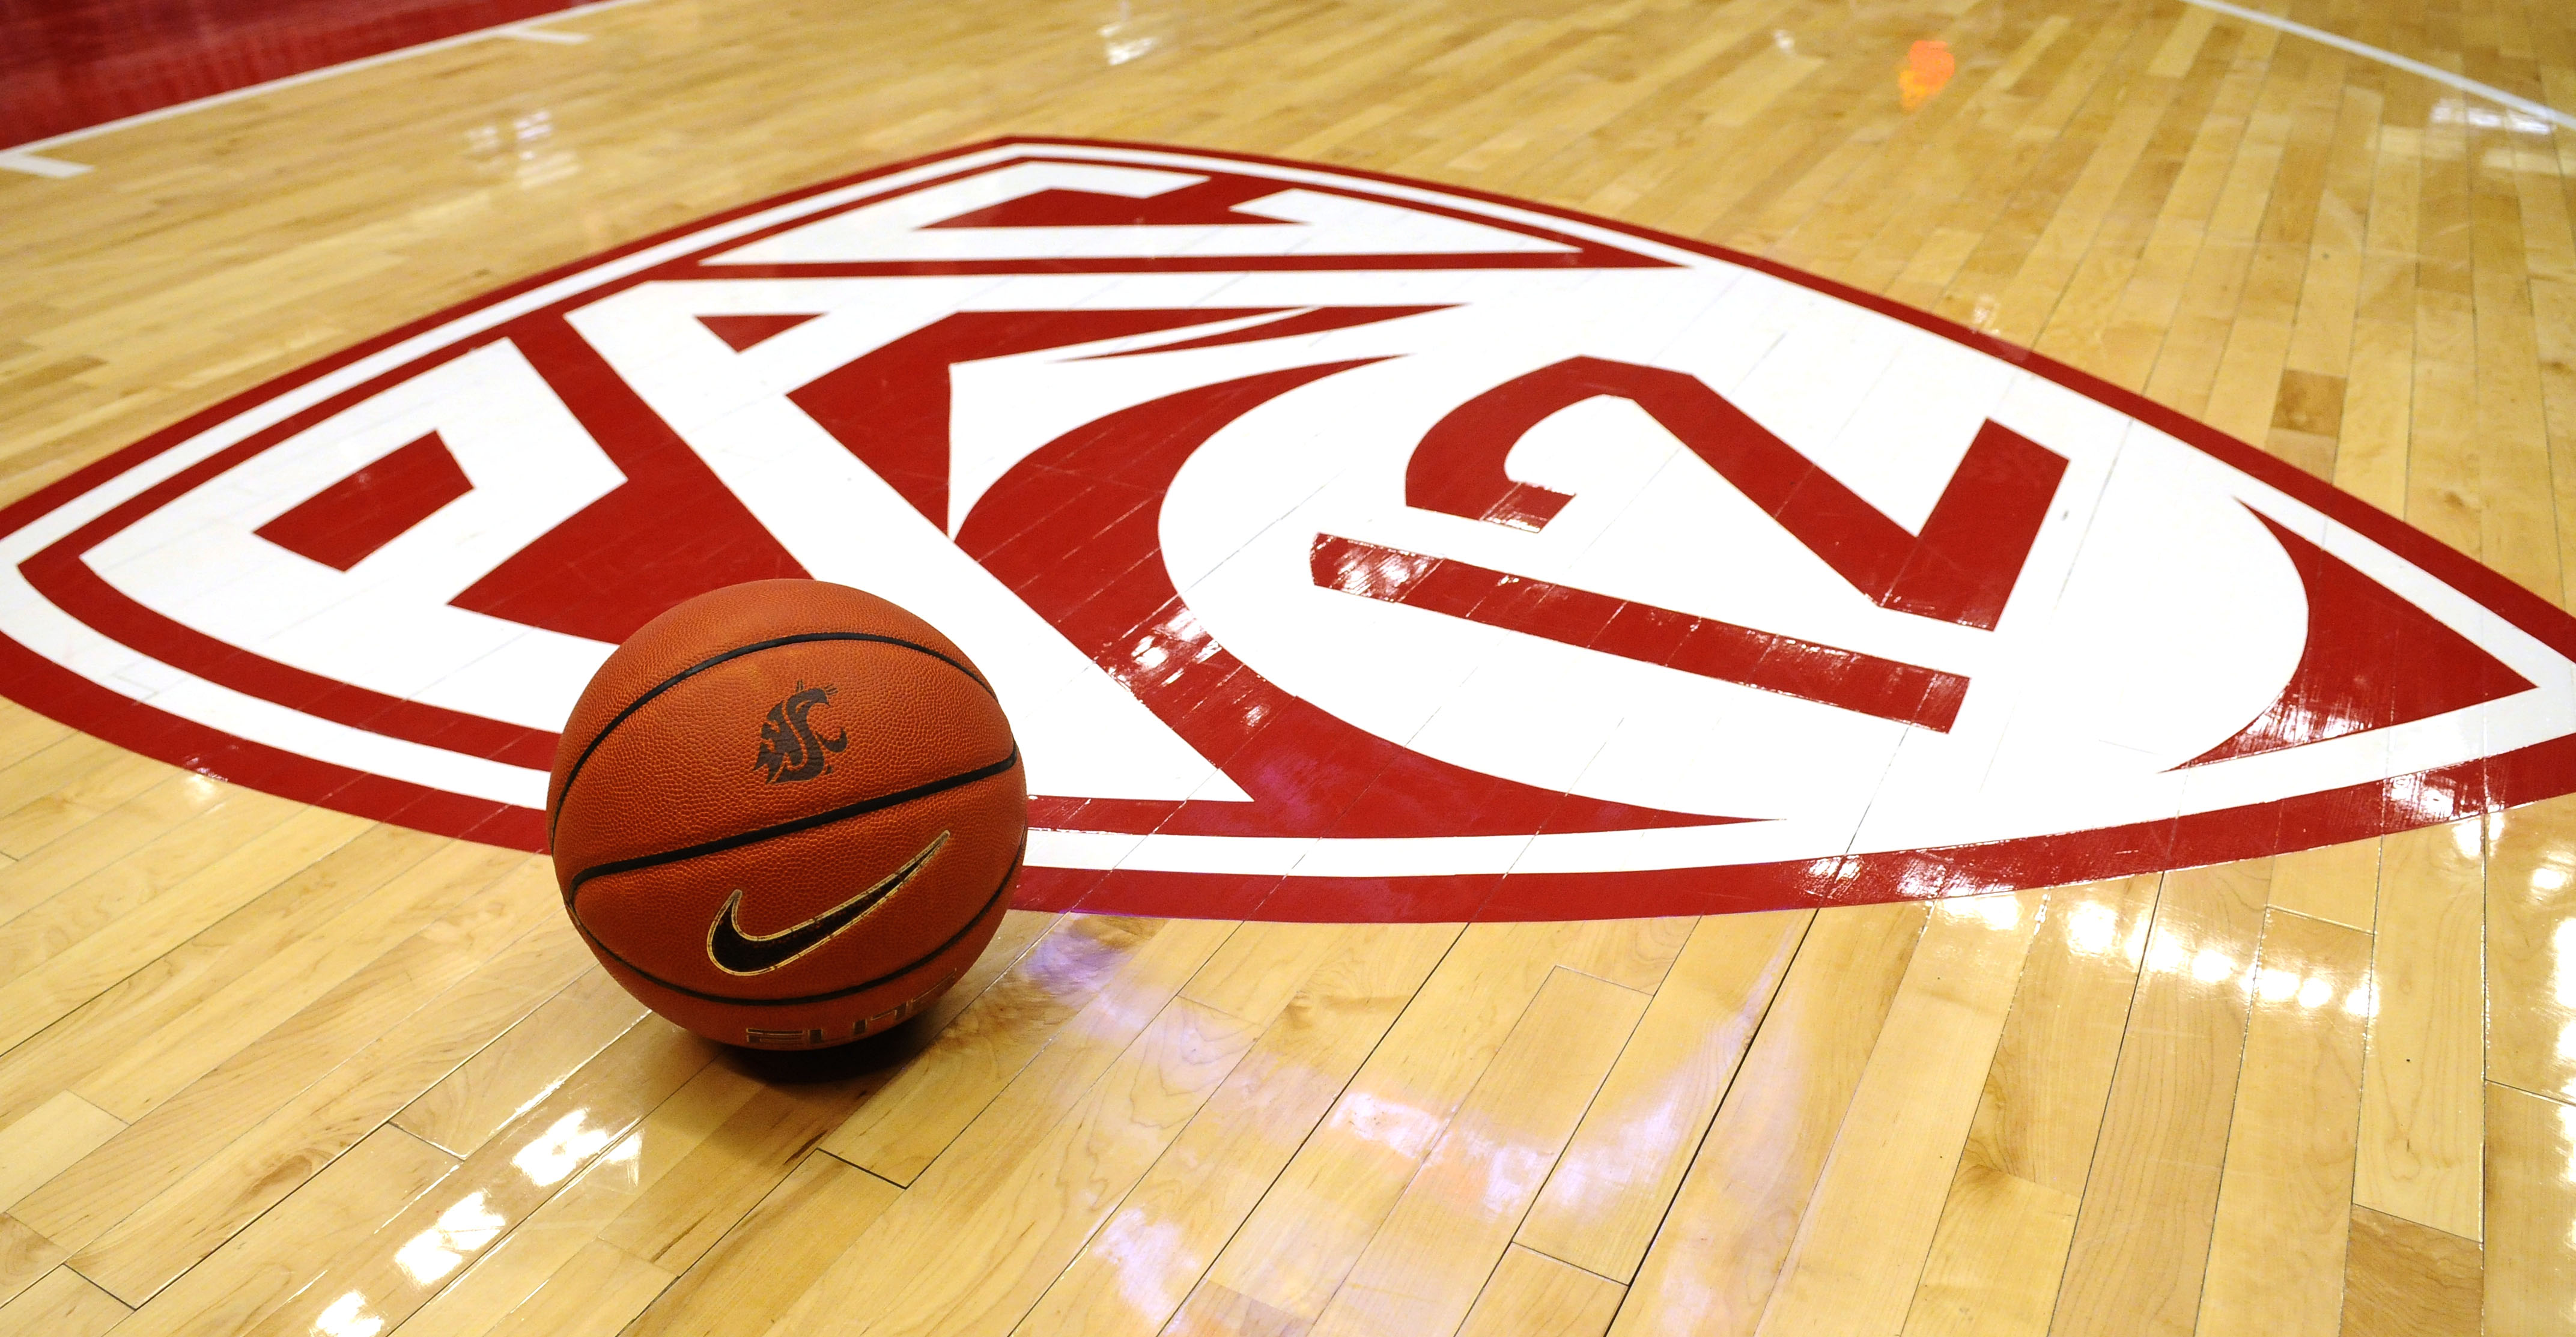 Arizona Basketball Schedule 2020-21 Pac 12 approves 20 game conference schedule for 2020 21 basketball